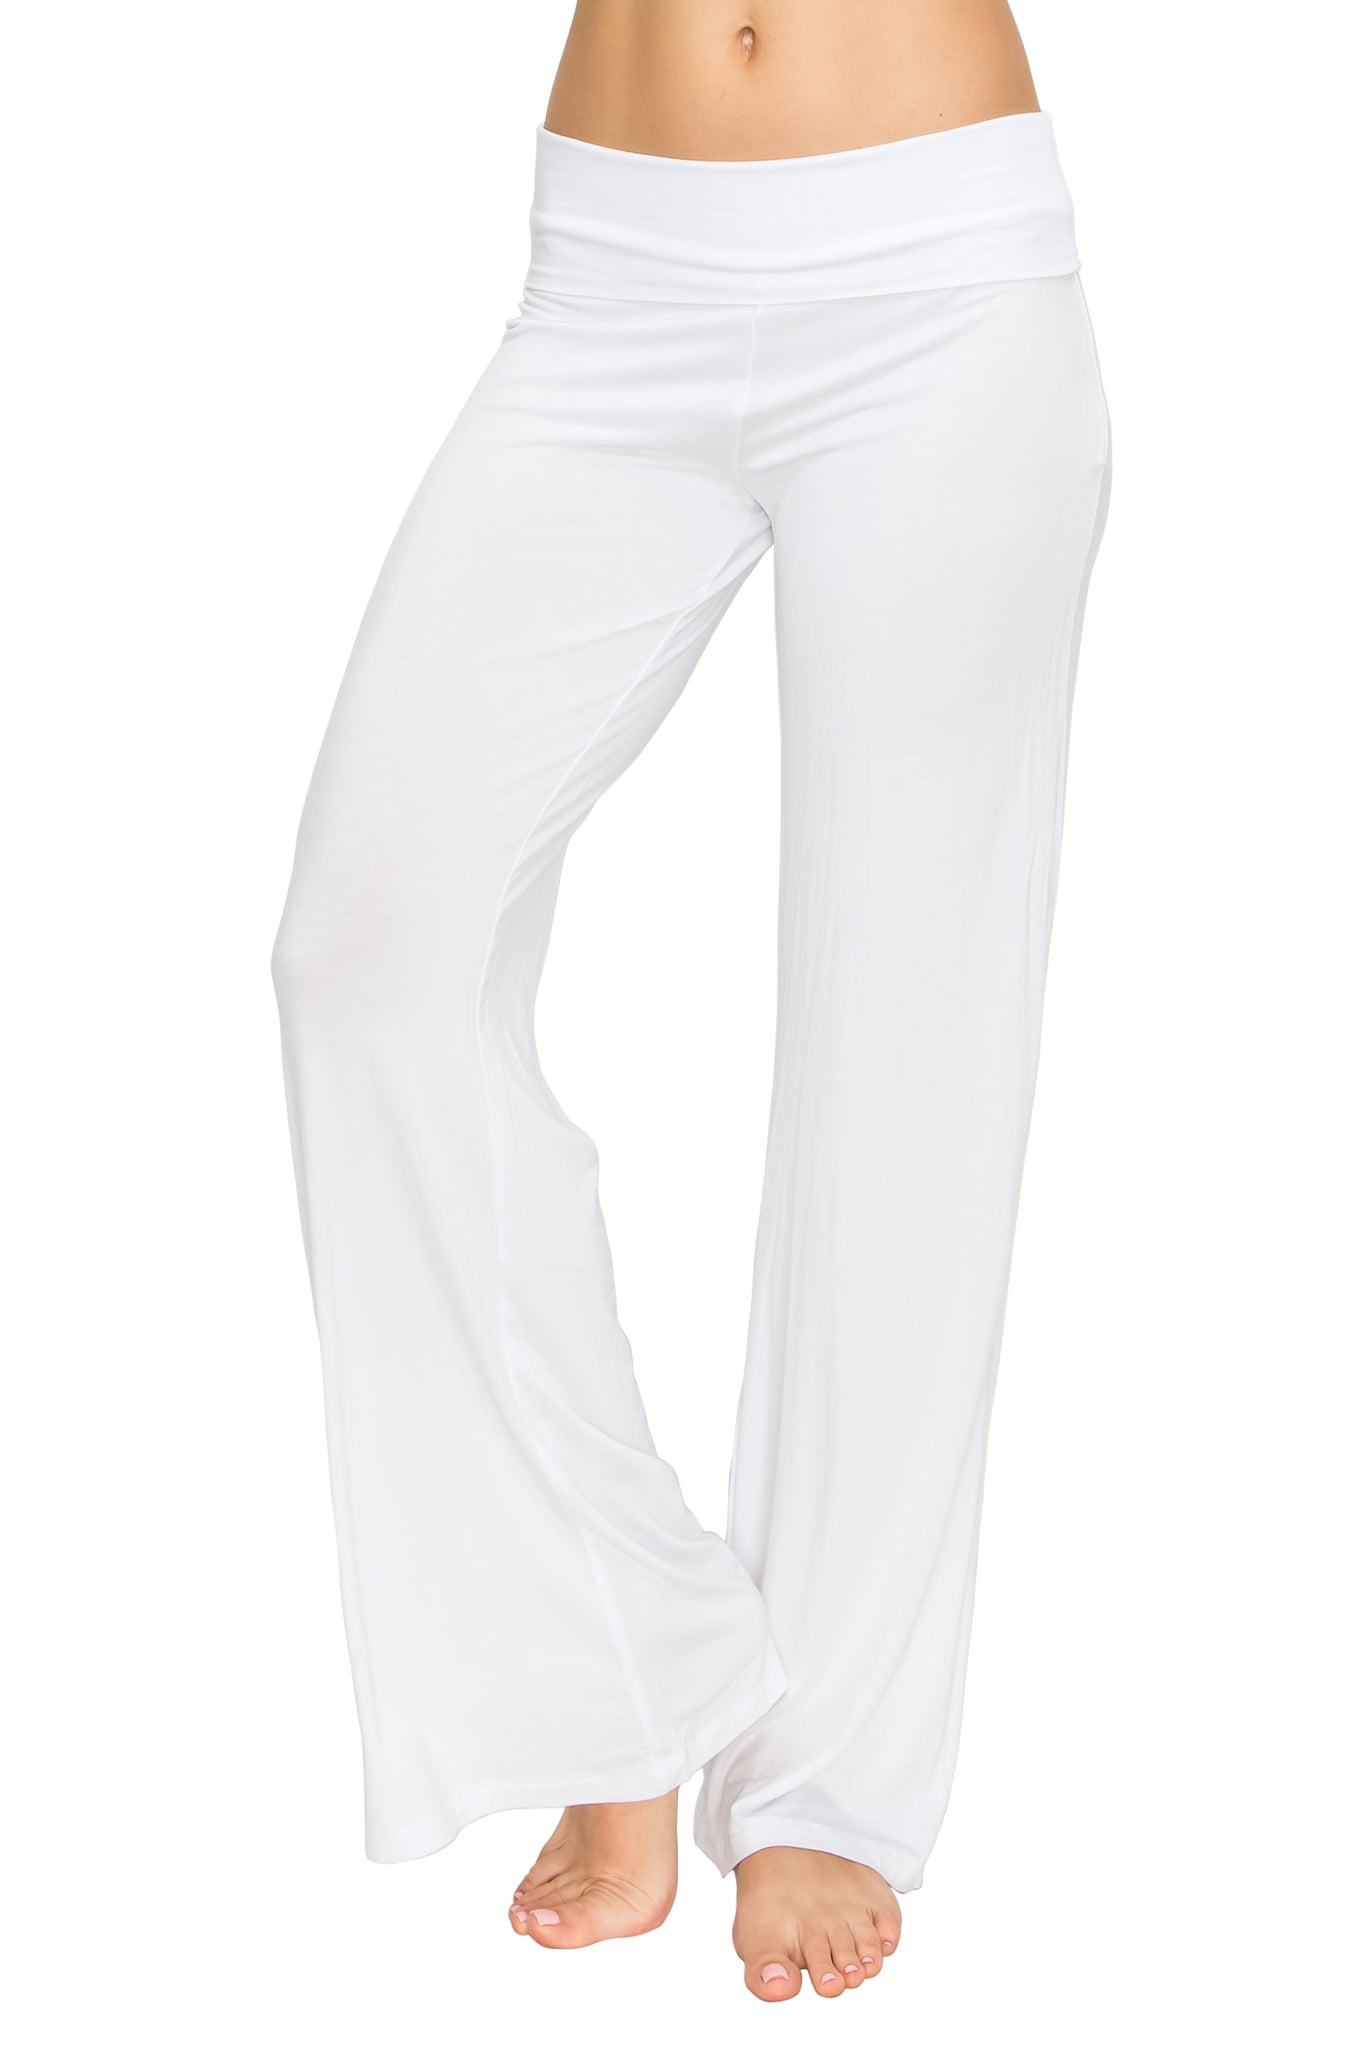 White Foldover Yoga Pants - Poplooks